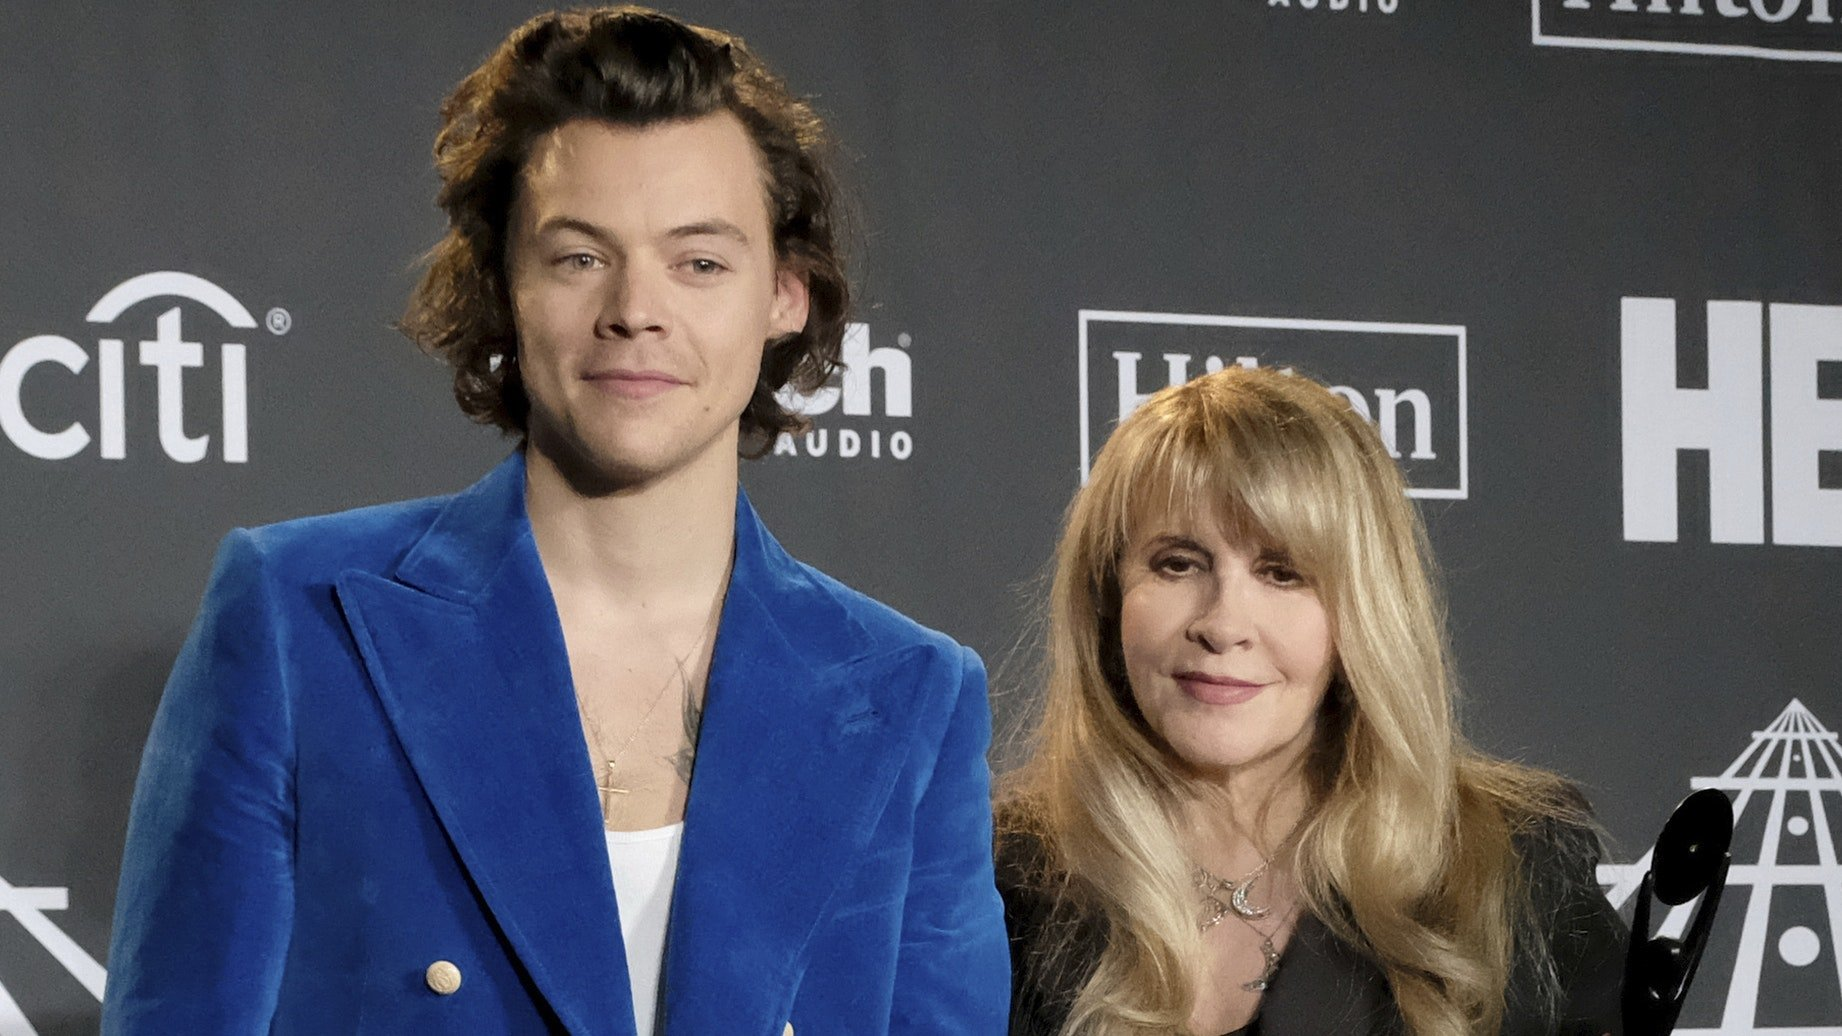 stevie-nicks-mistakes-harry-styles-for-an-nsync-member-gets-made-fun-of-on-social-media